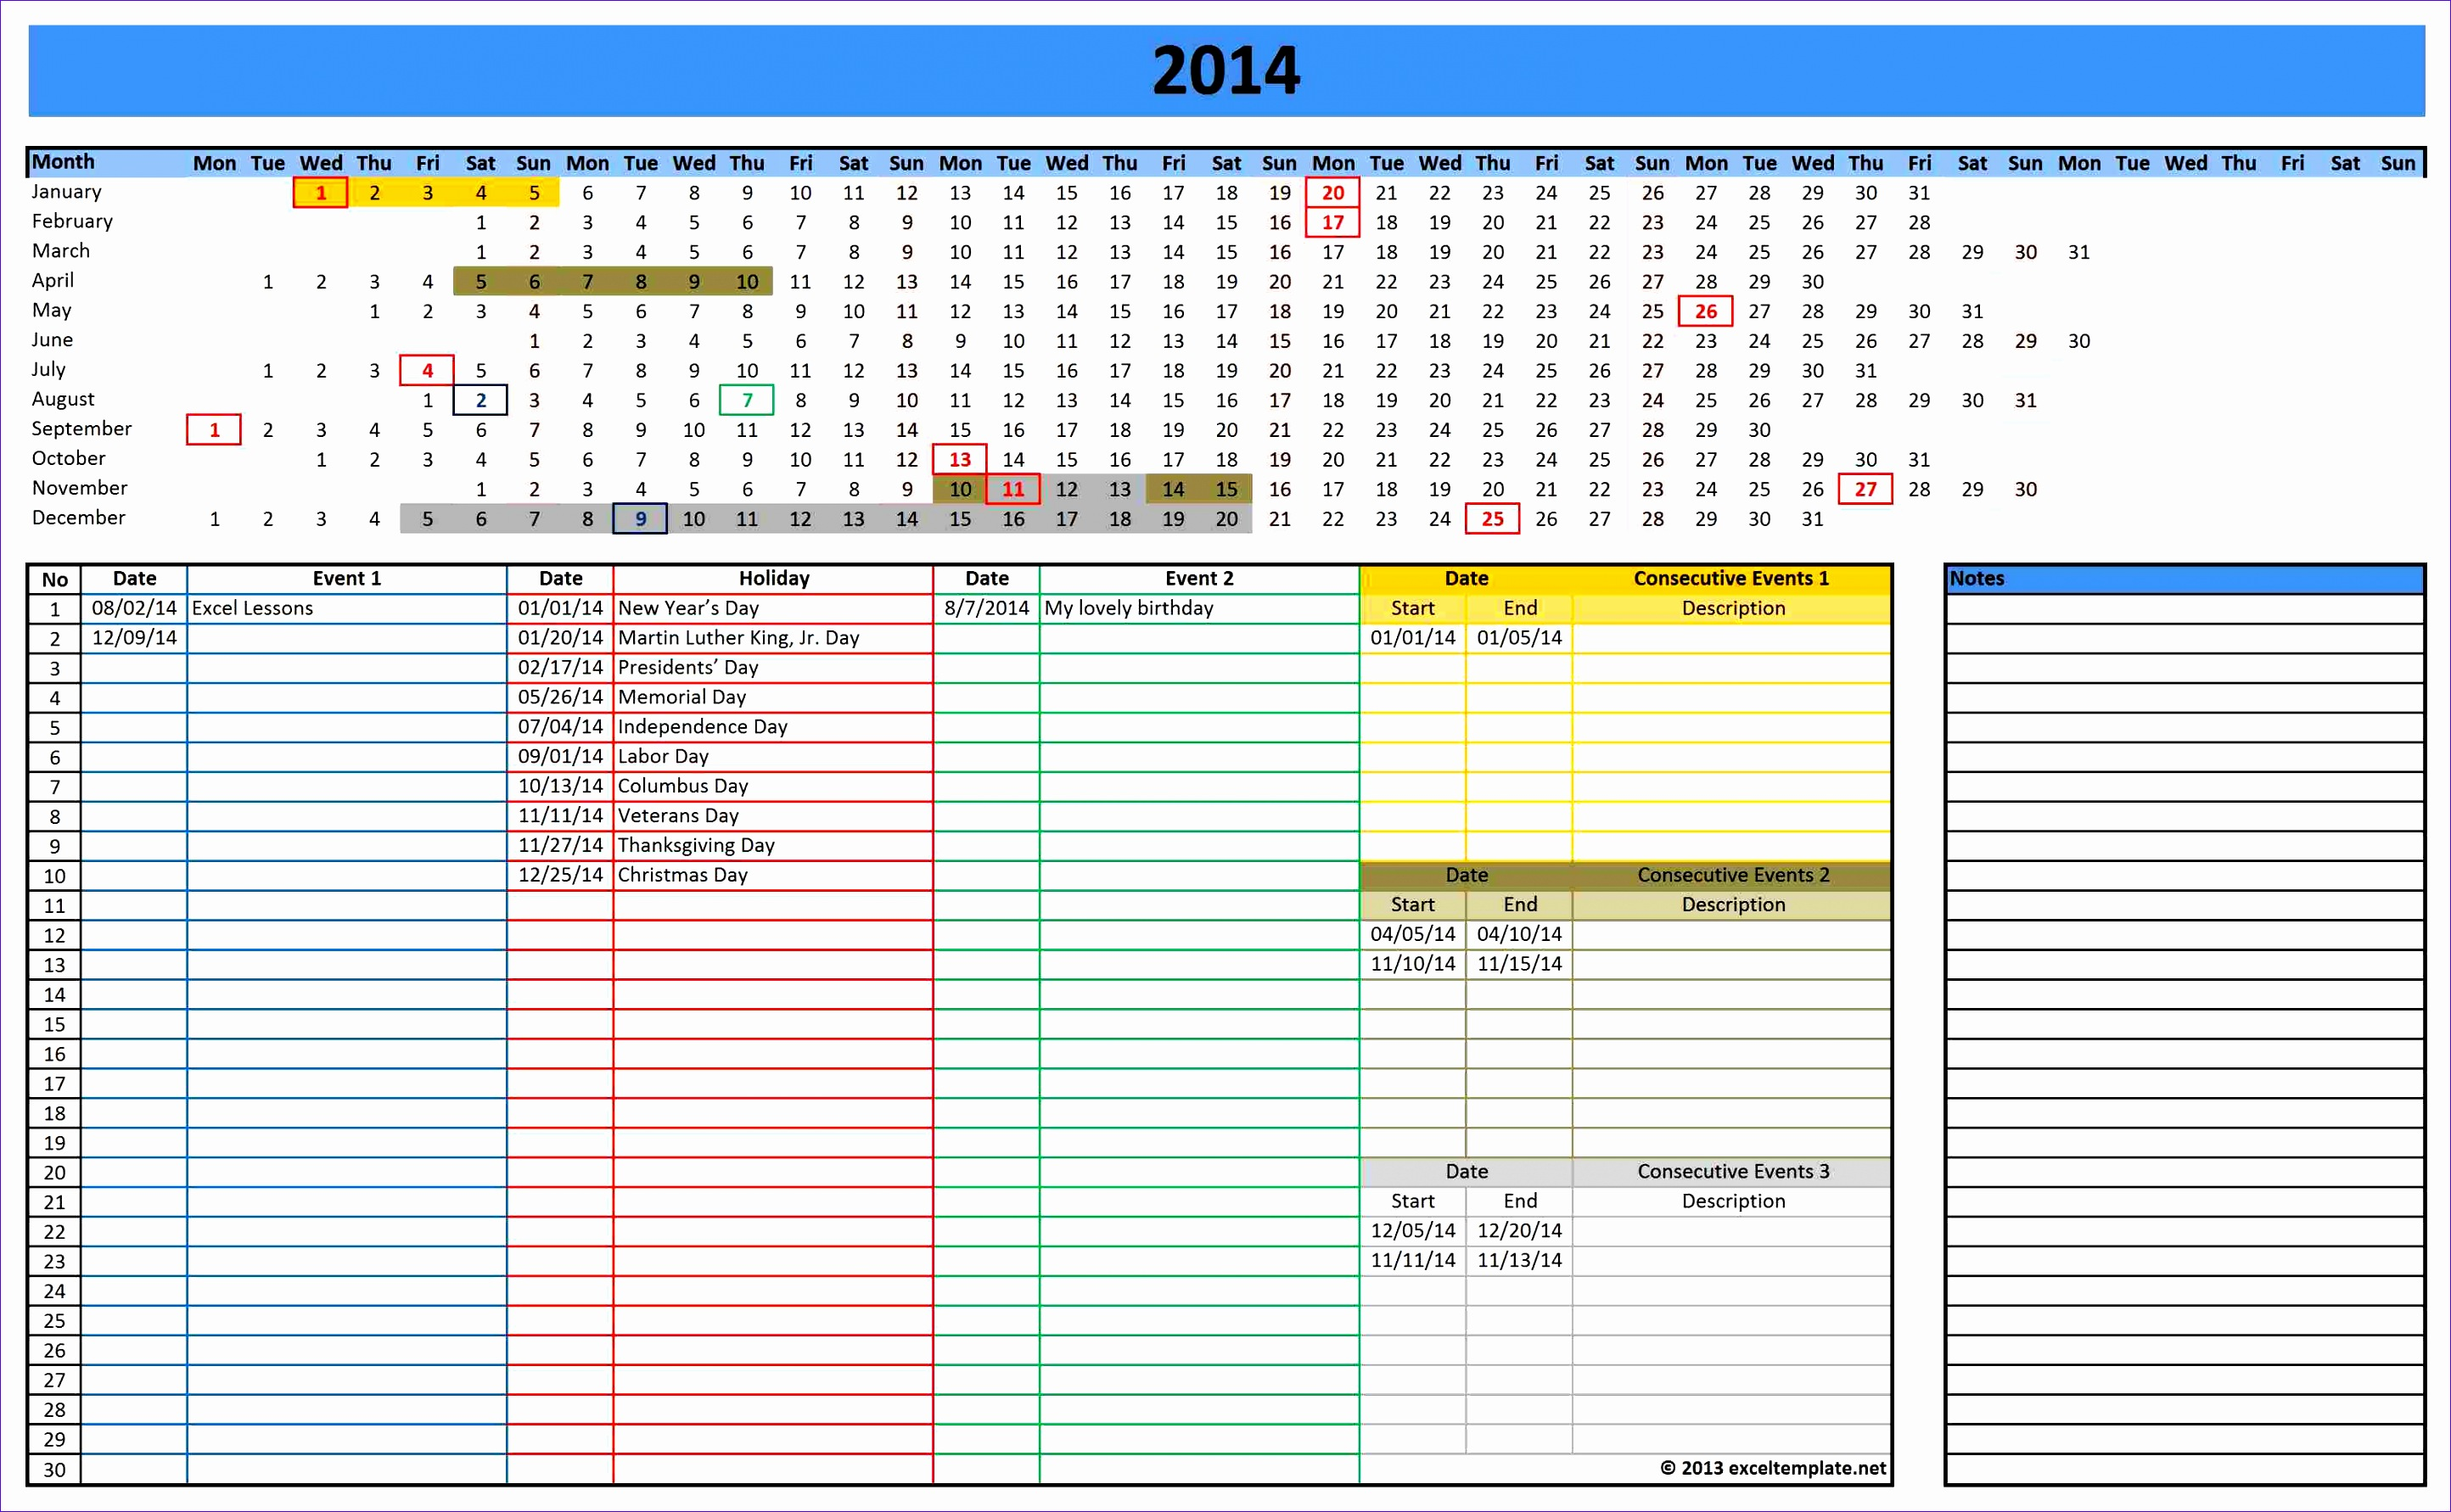 Staff Rota Template Excel N8yke Unique Excel Calendar Templates